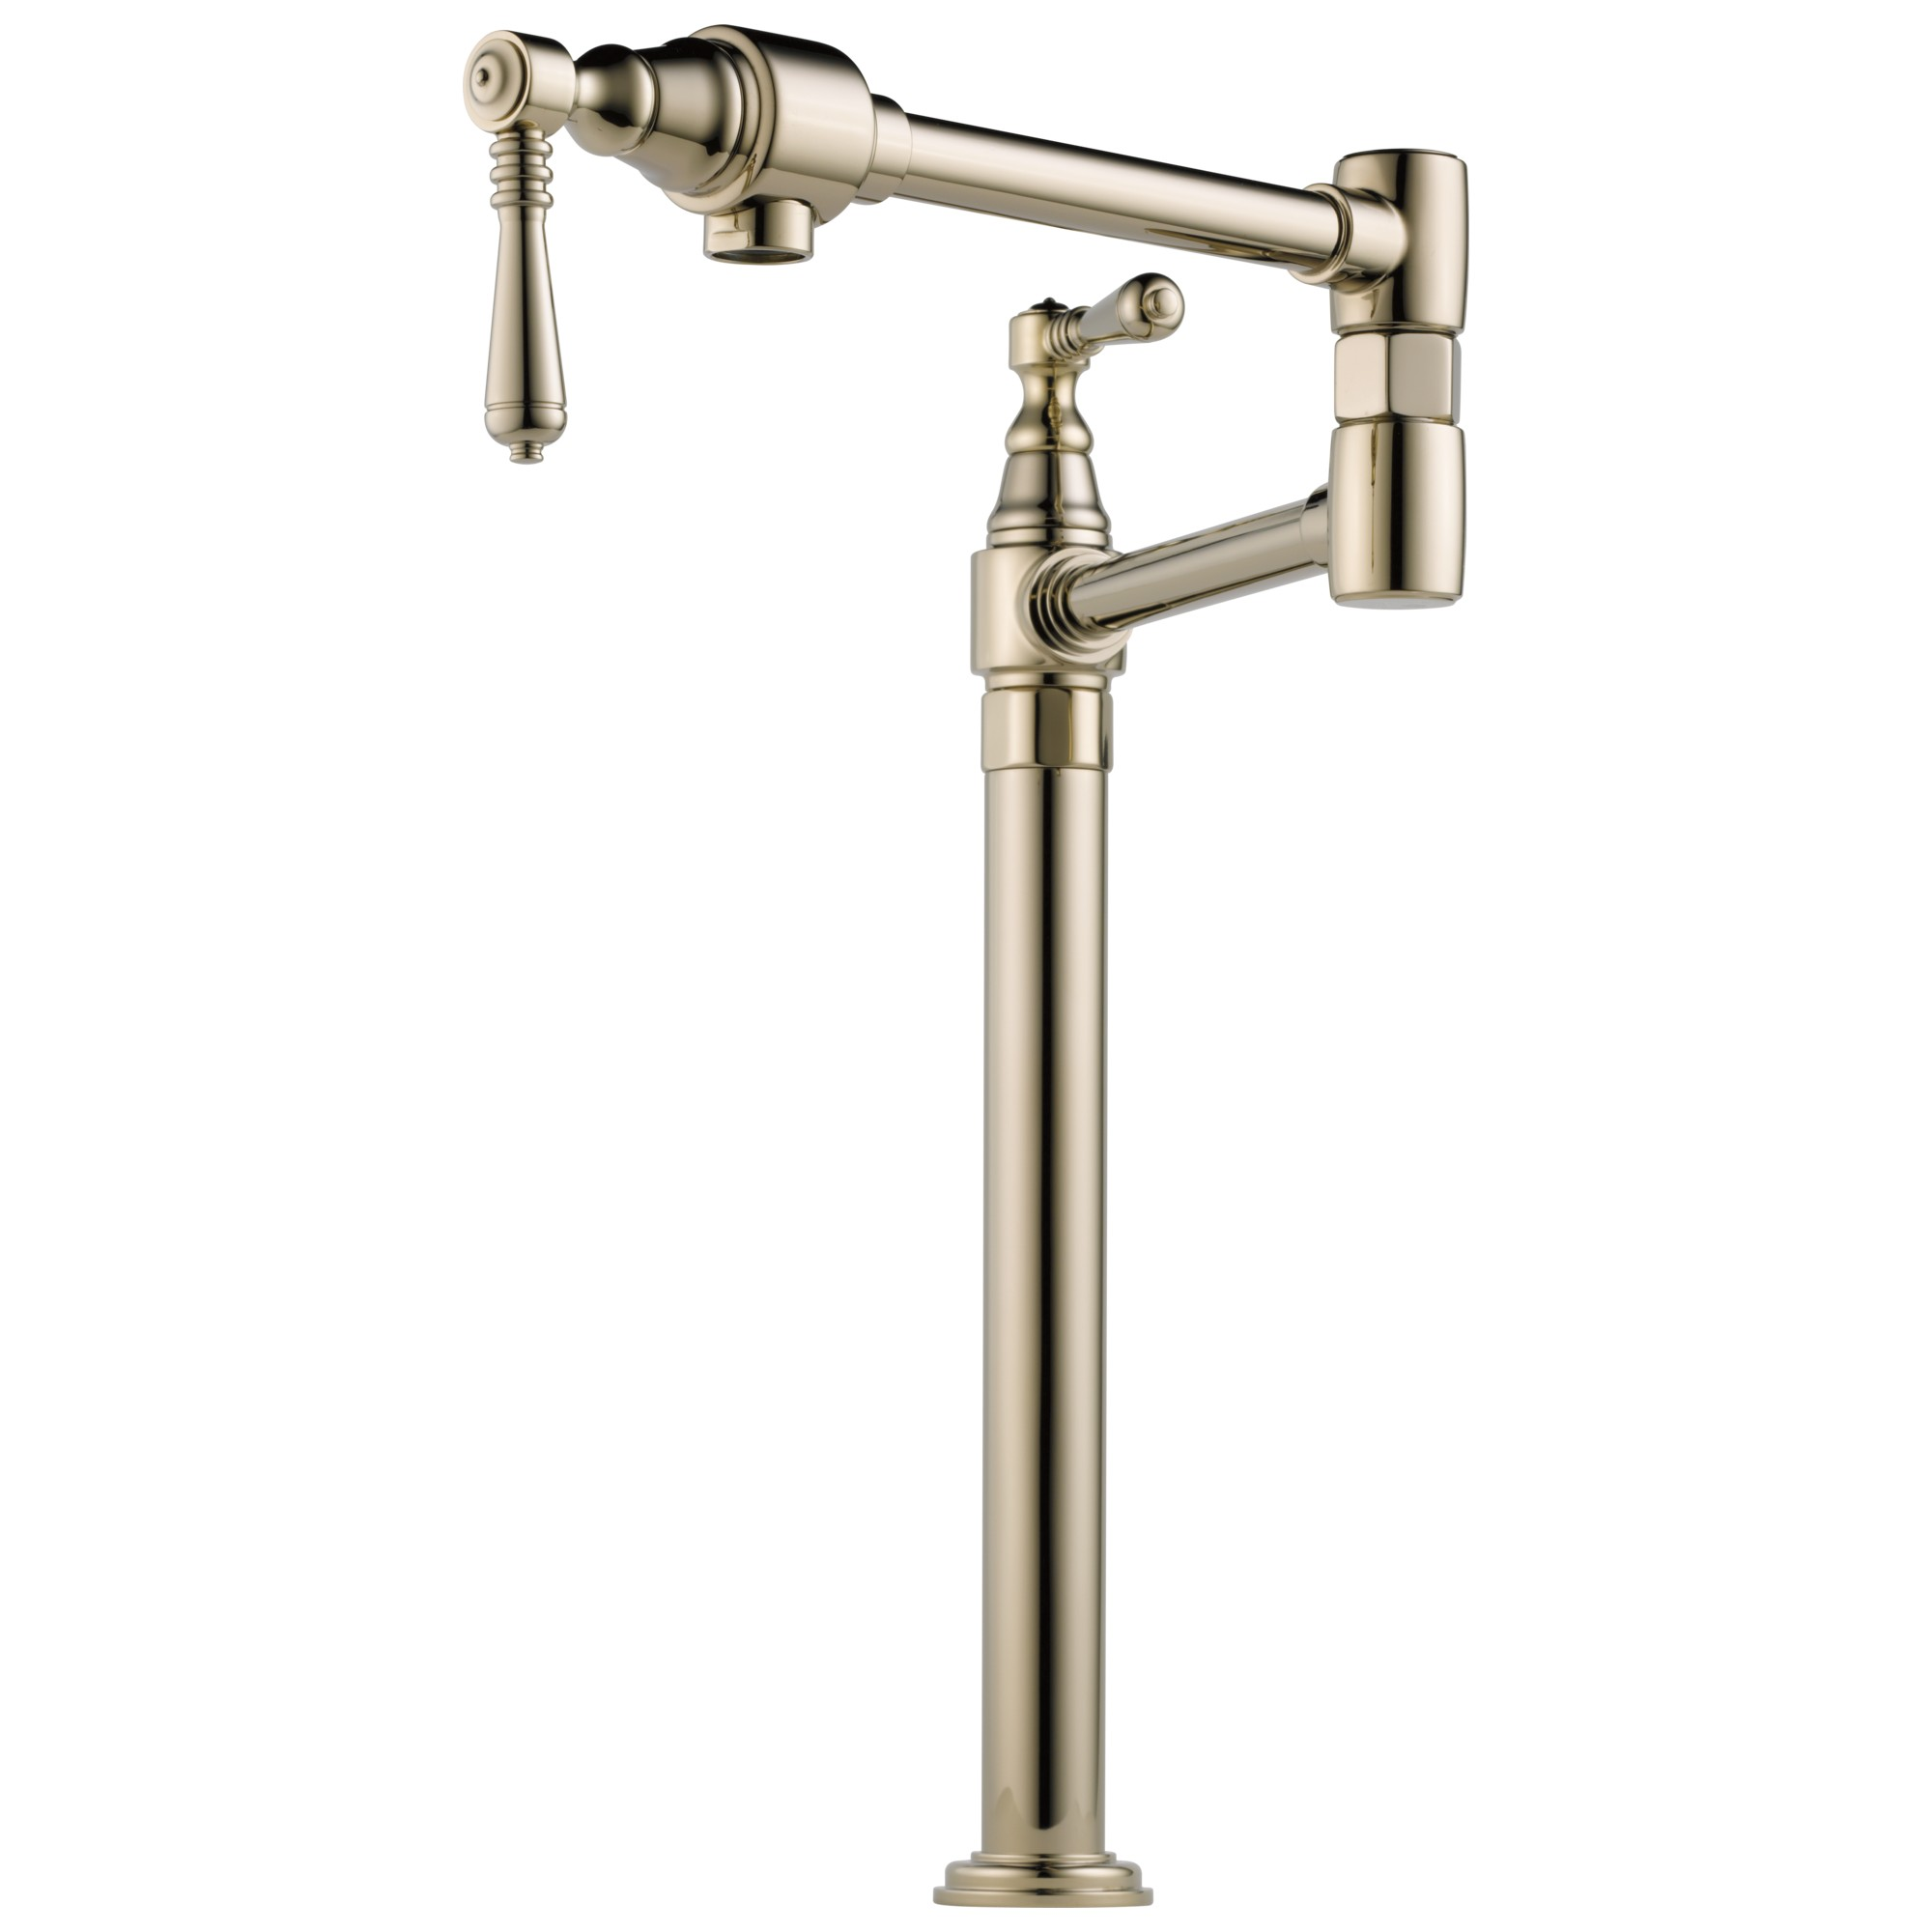 Brizo 62710LF-PN Traditional Deck Mount Pot Filler Faucet - Polished Nickel